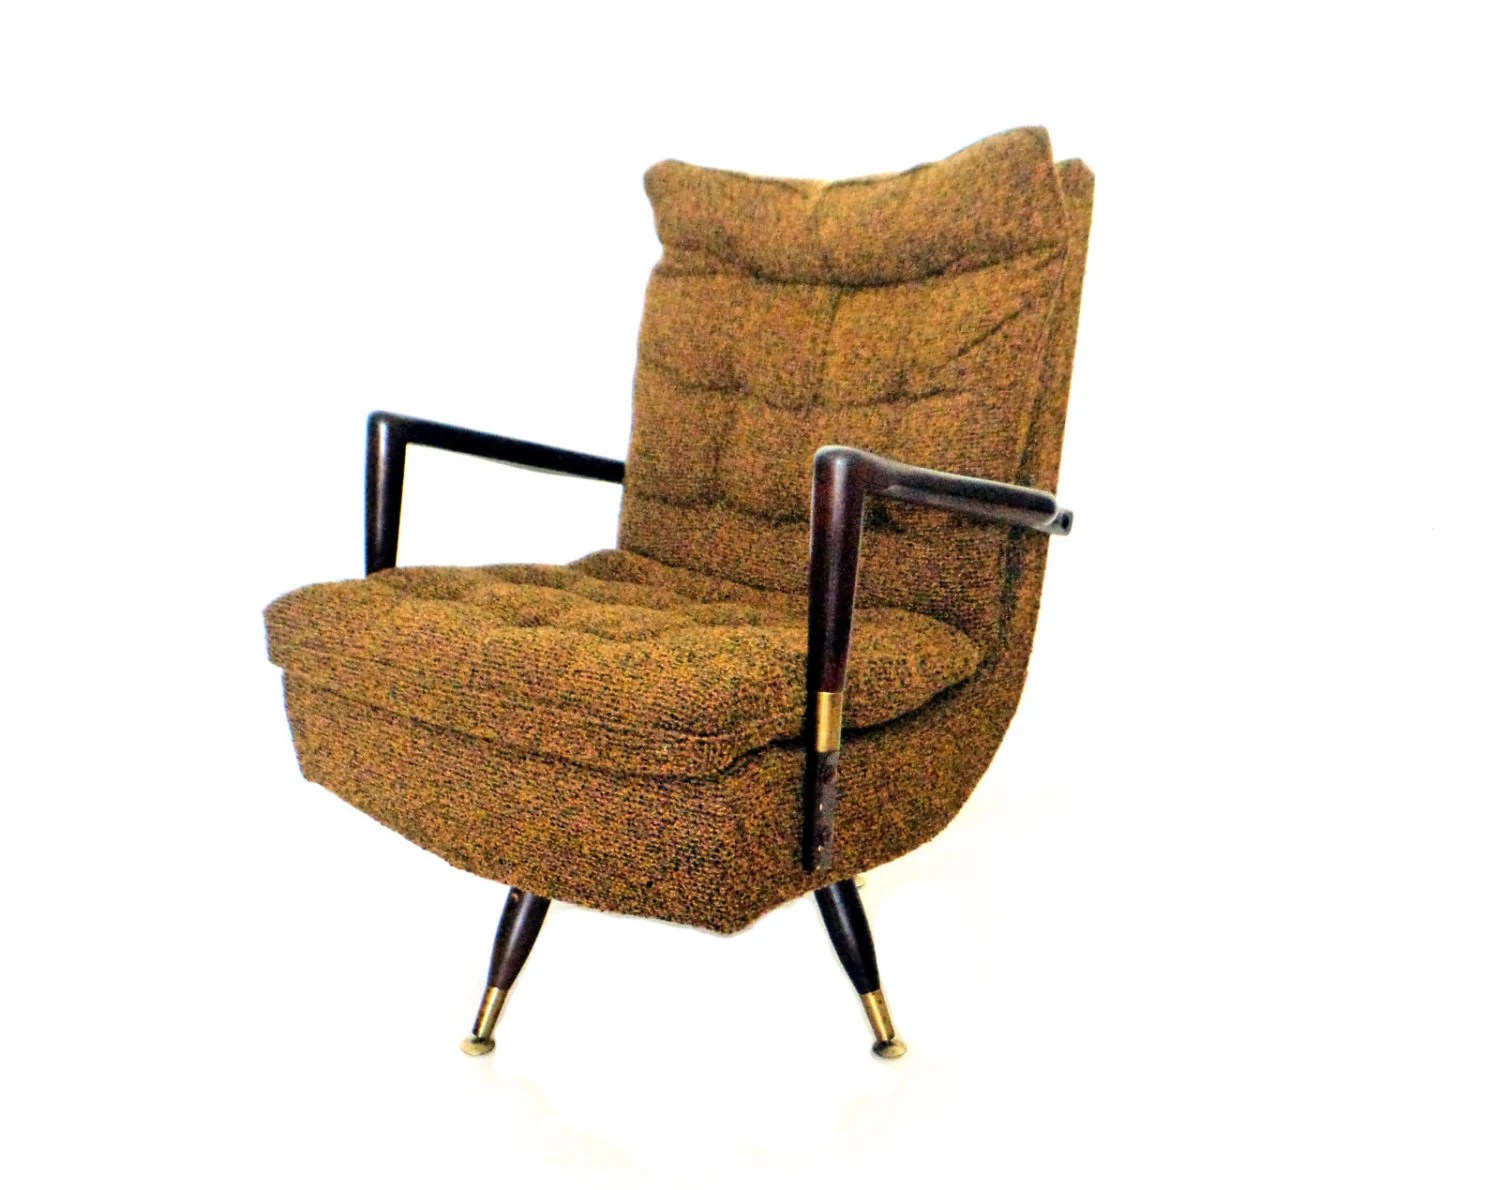 Midcentury Chair Mid Century Modern Swivel Chair Retro Rocking By